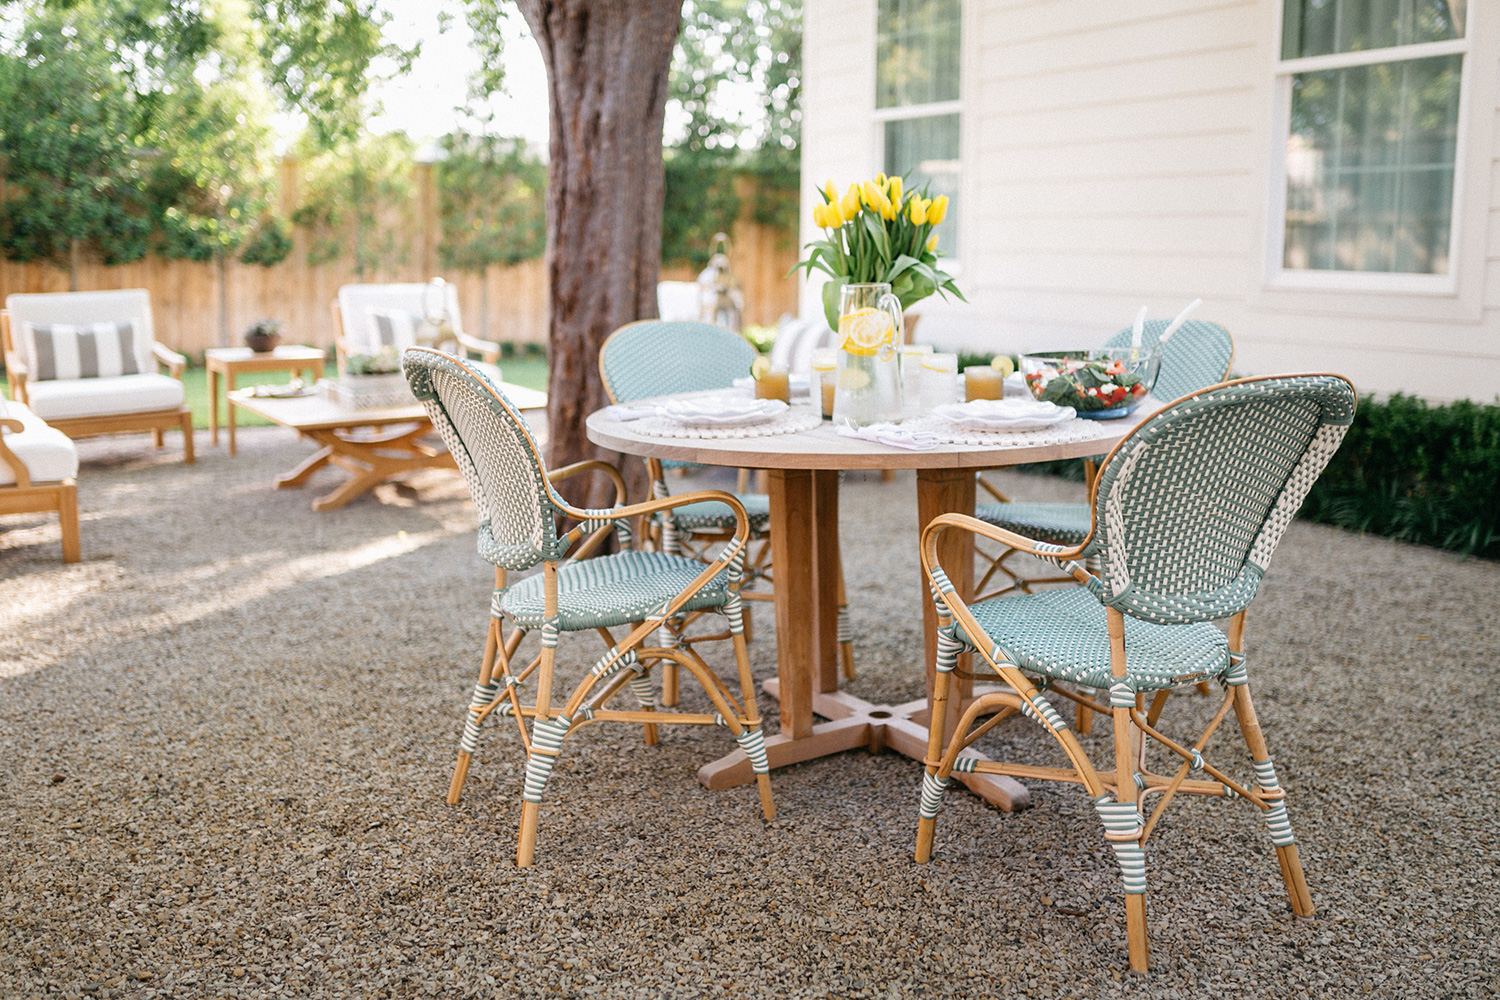 Tips For Styling A Chic Outdoor Patio With Frontgate Patio Furniture